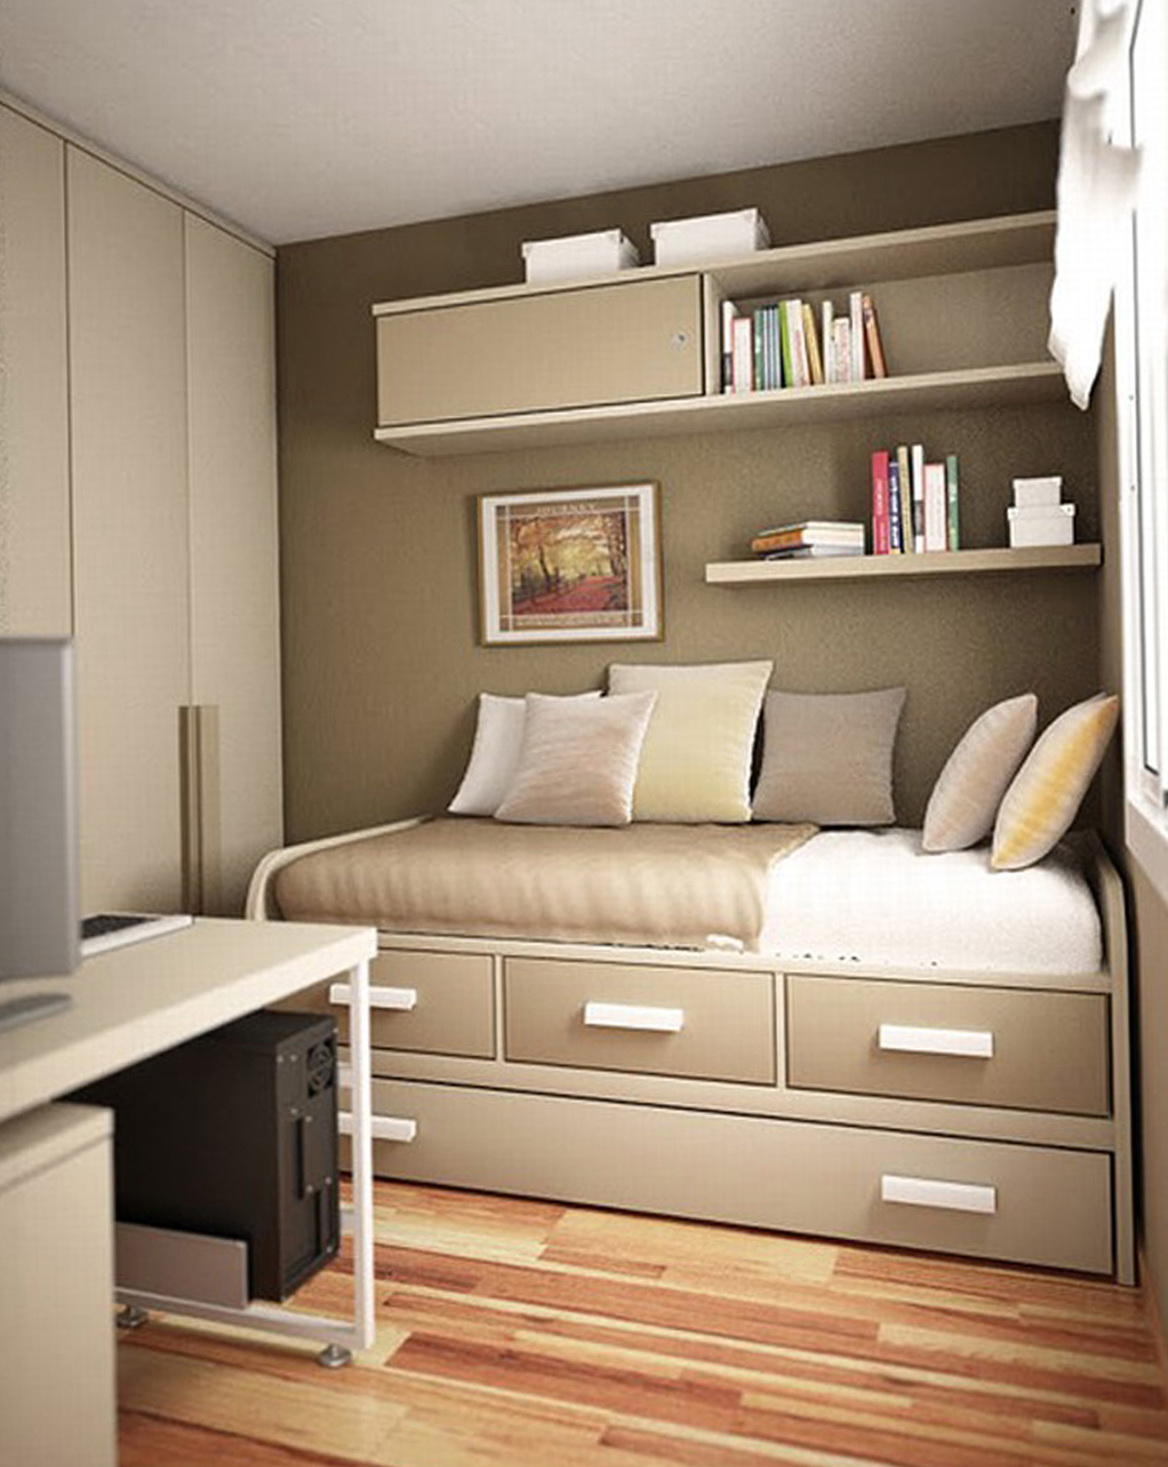 Bed With Drawers Underneath Ikea